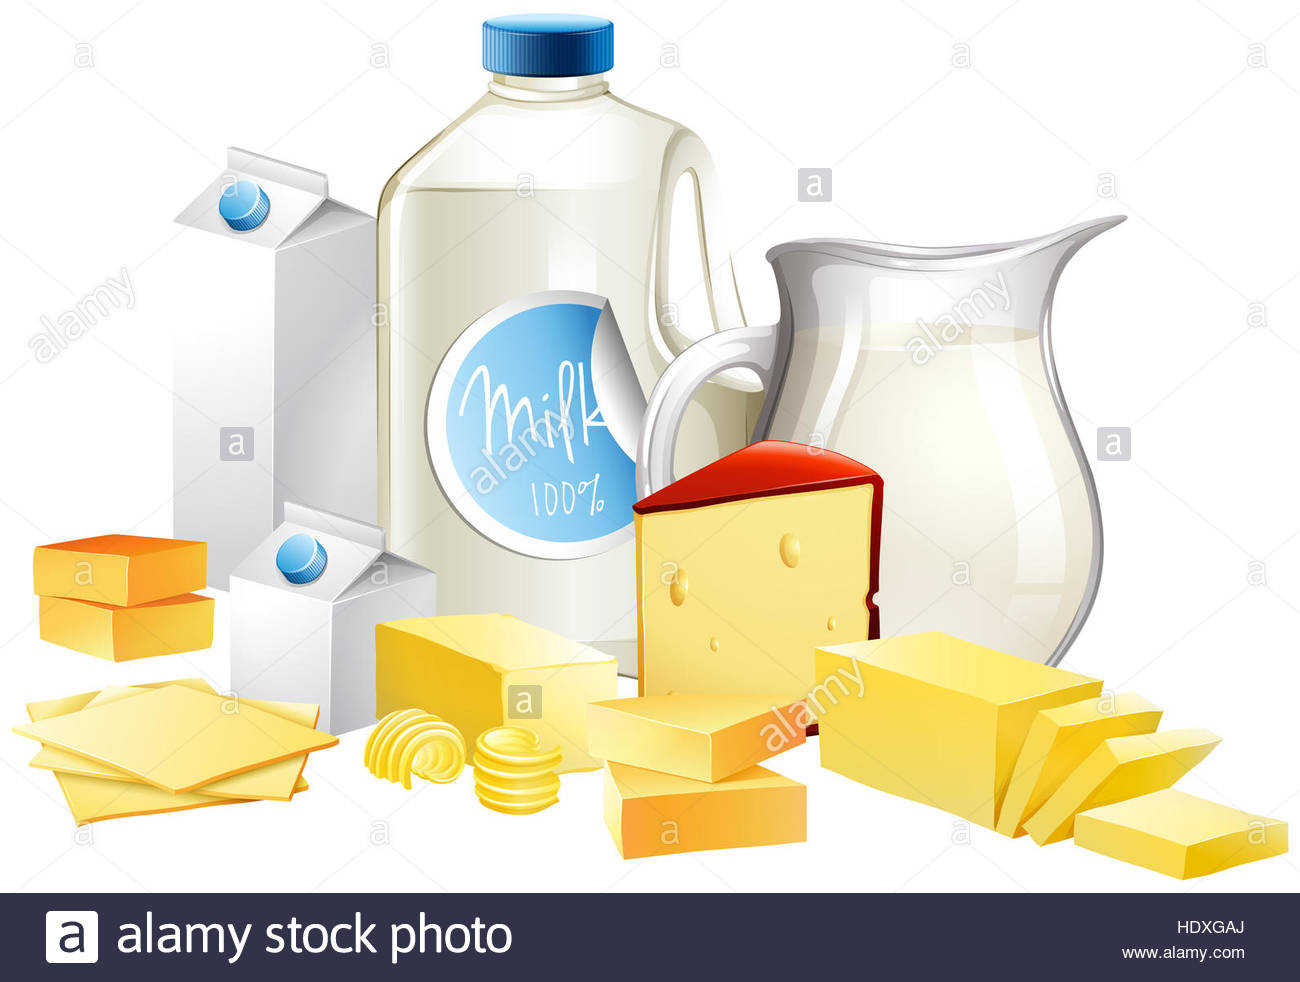 Clipart Dairy Stock Photos & Clipart Dairy Stock Images.